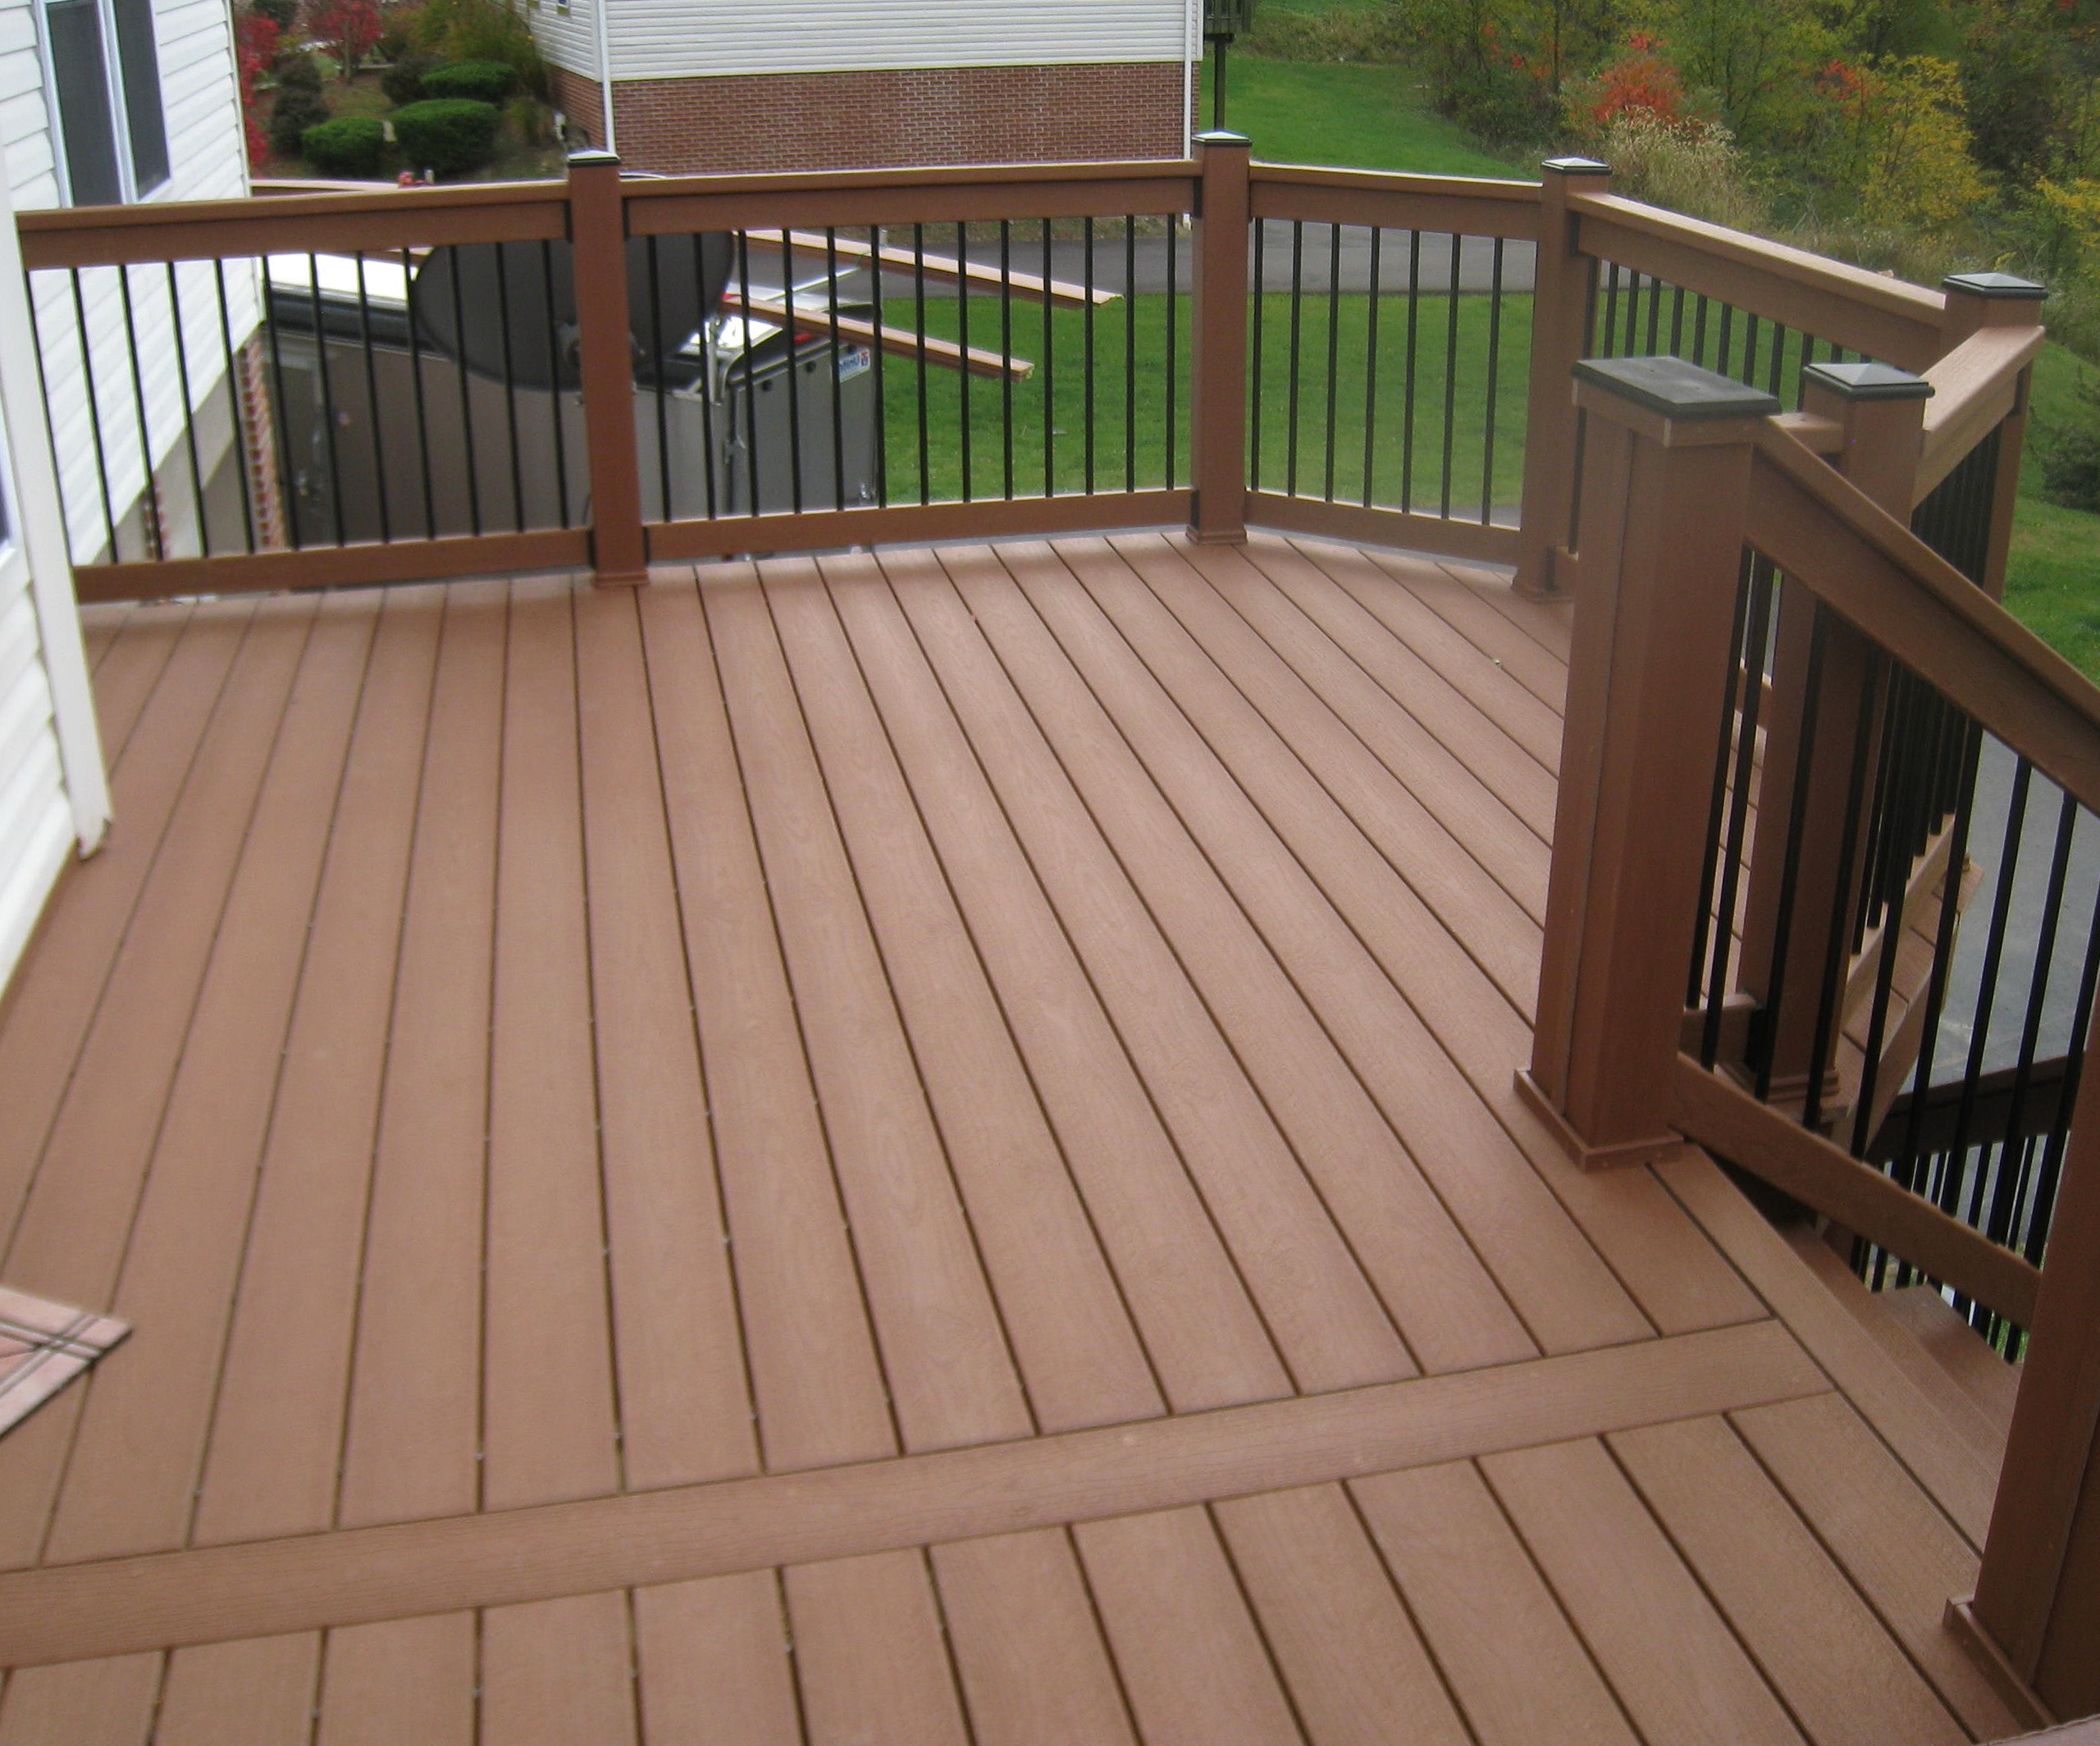 Deck Baluster Spacing Code Home Design Ideas